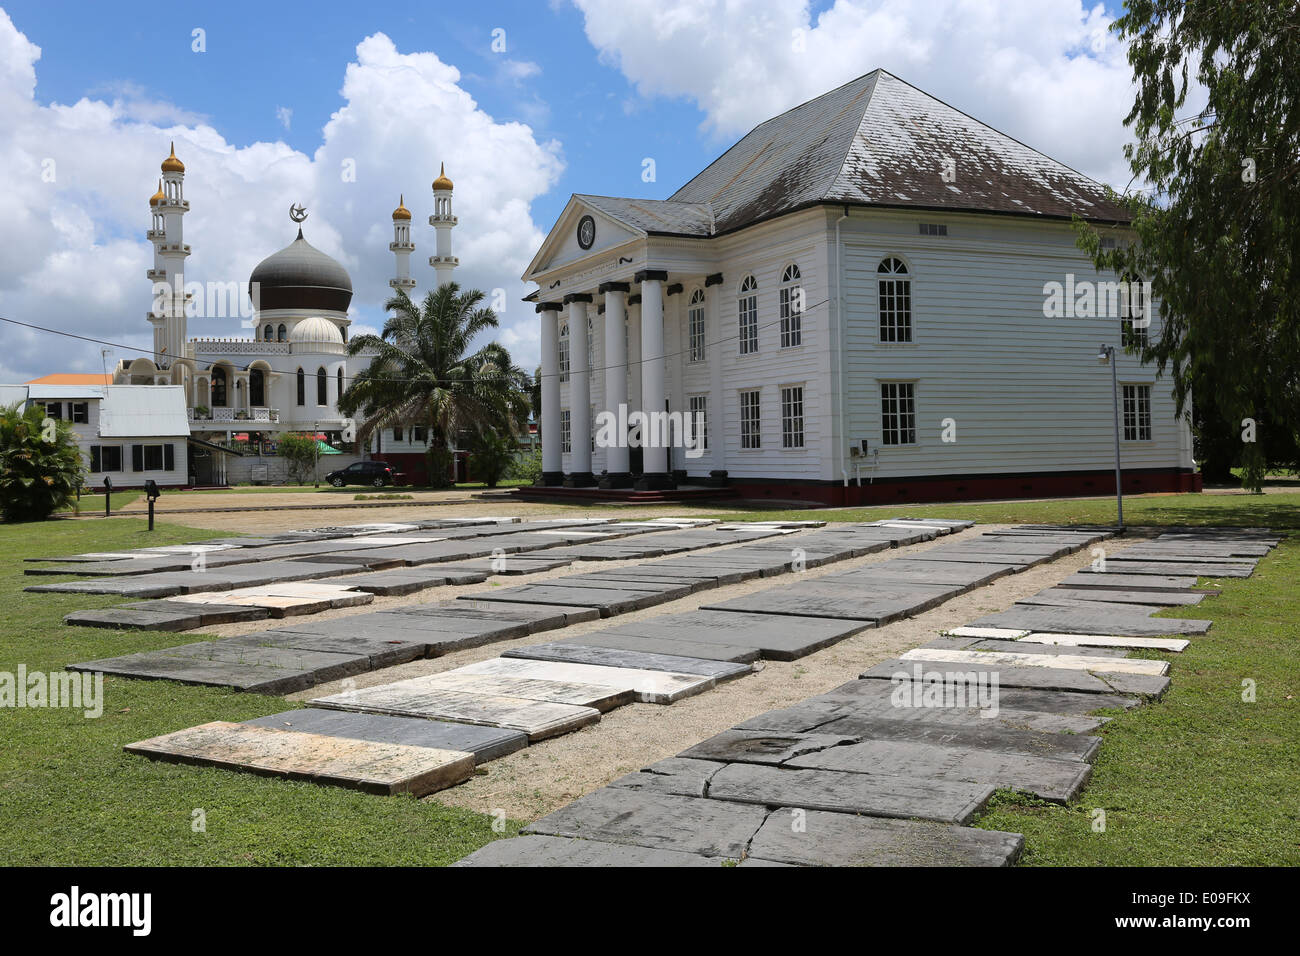 Islamic mosque (left) and jewish synagogue standing side by side in Paramaribo, capital of Suriname, Latin America - Stock Image